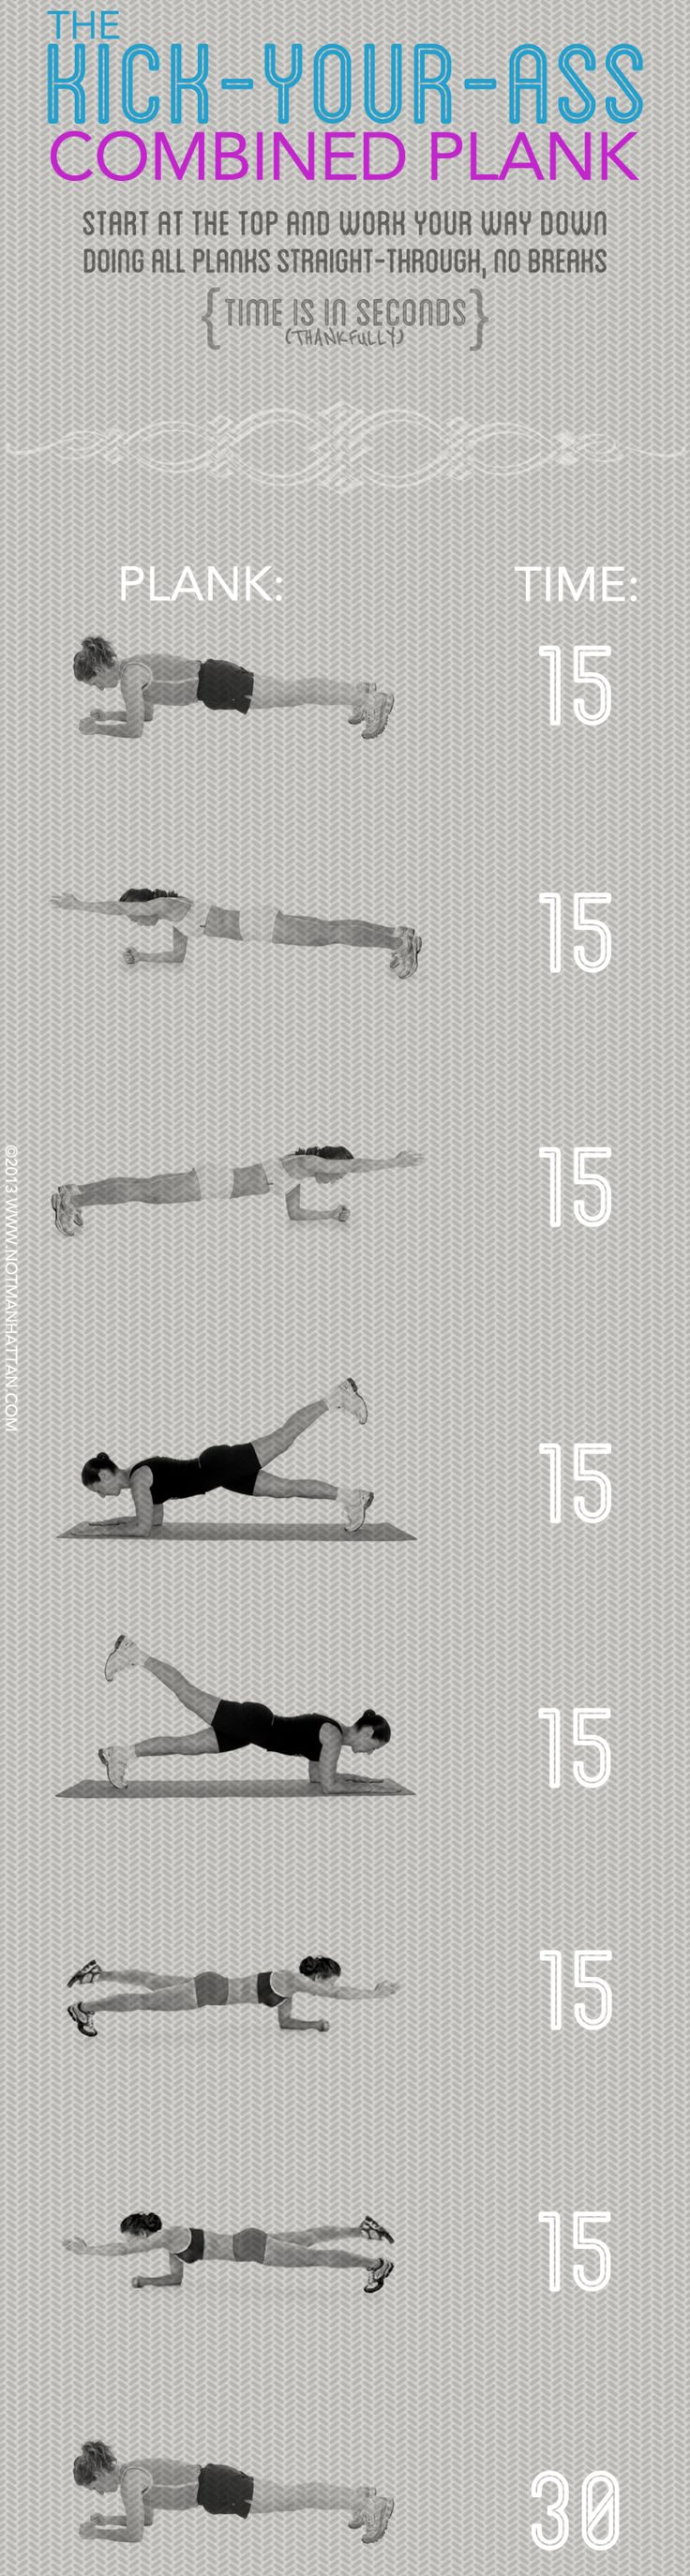 core workout: Kick-Your-Ass Combined Plank